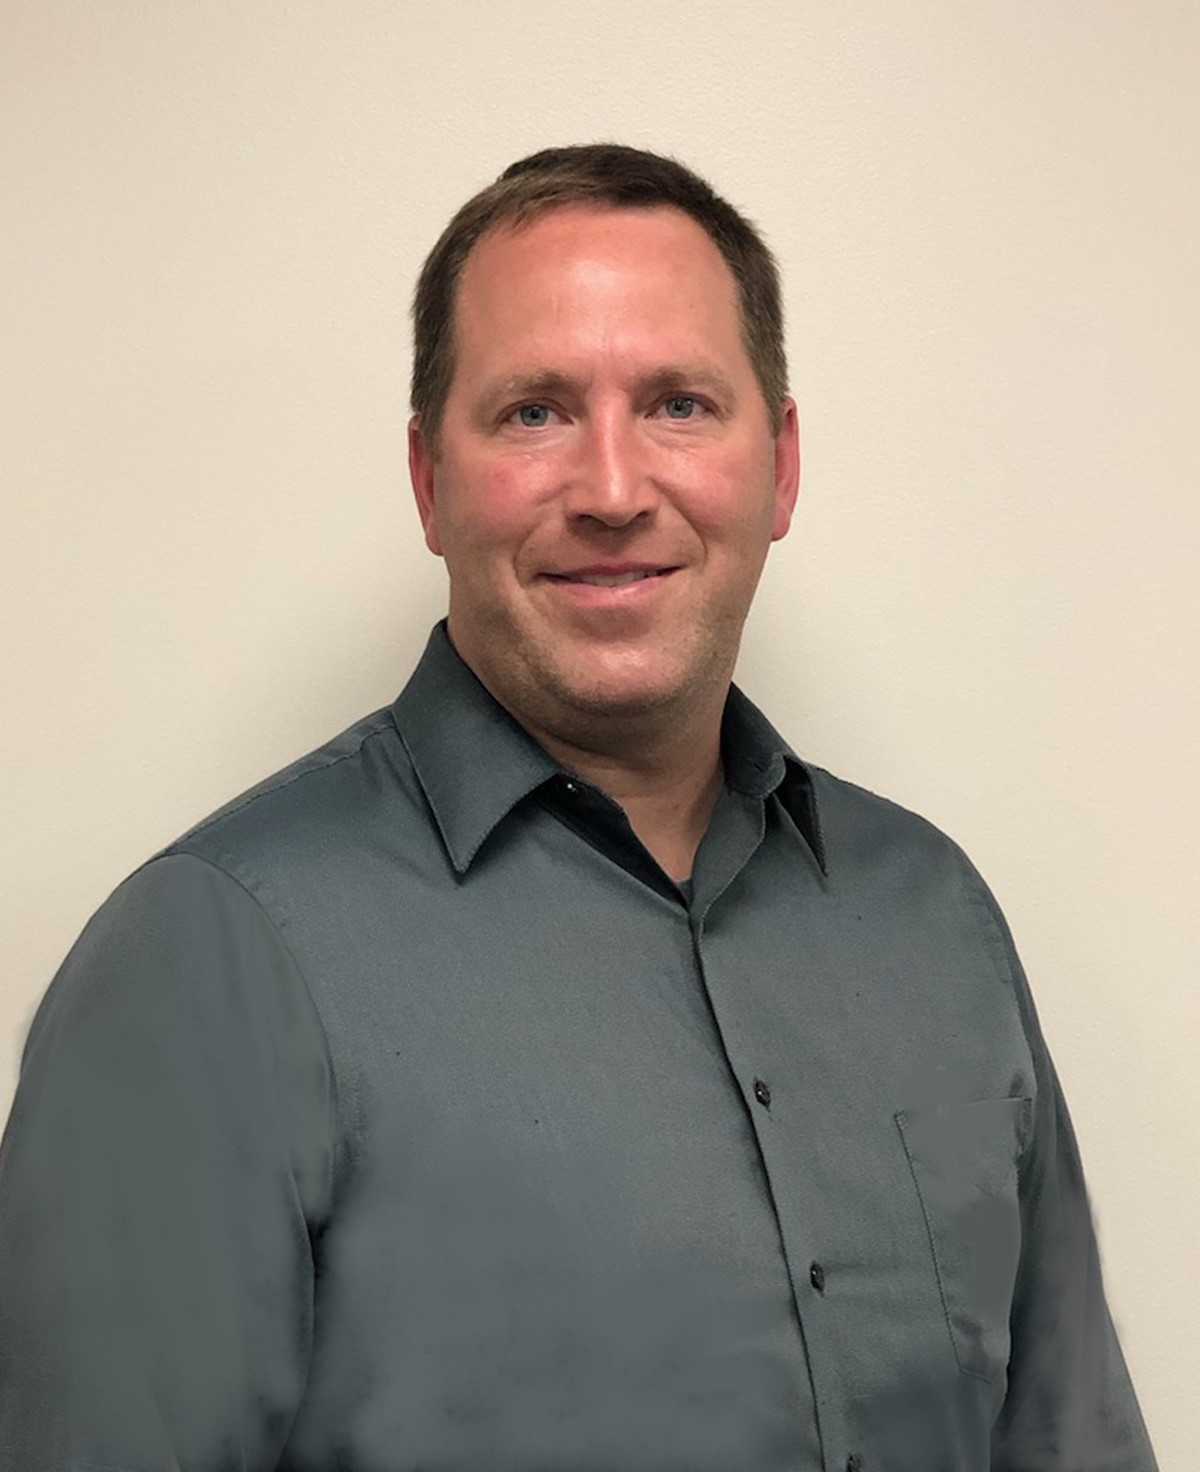 Jeffrey Yount, PA-C - Family Practice Center PC - Occupational Health Selinsgrove PA - Occupational Health near me